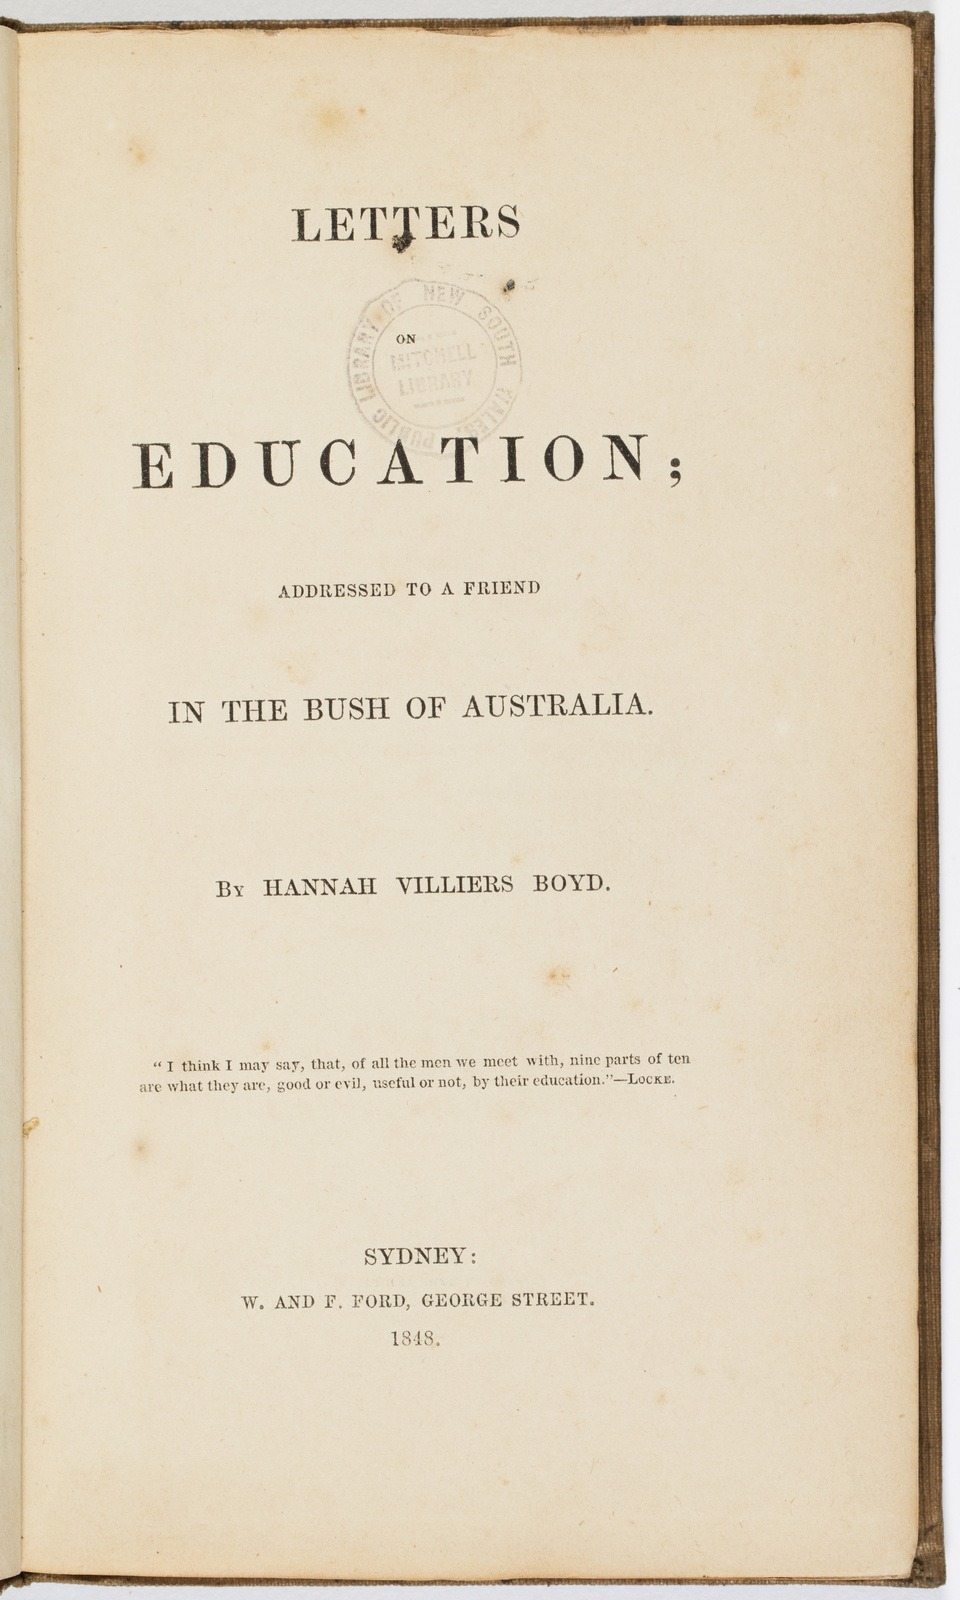 Letters on Education; addressed to a friend in the bush of Australia